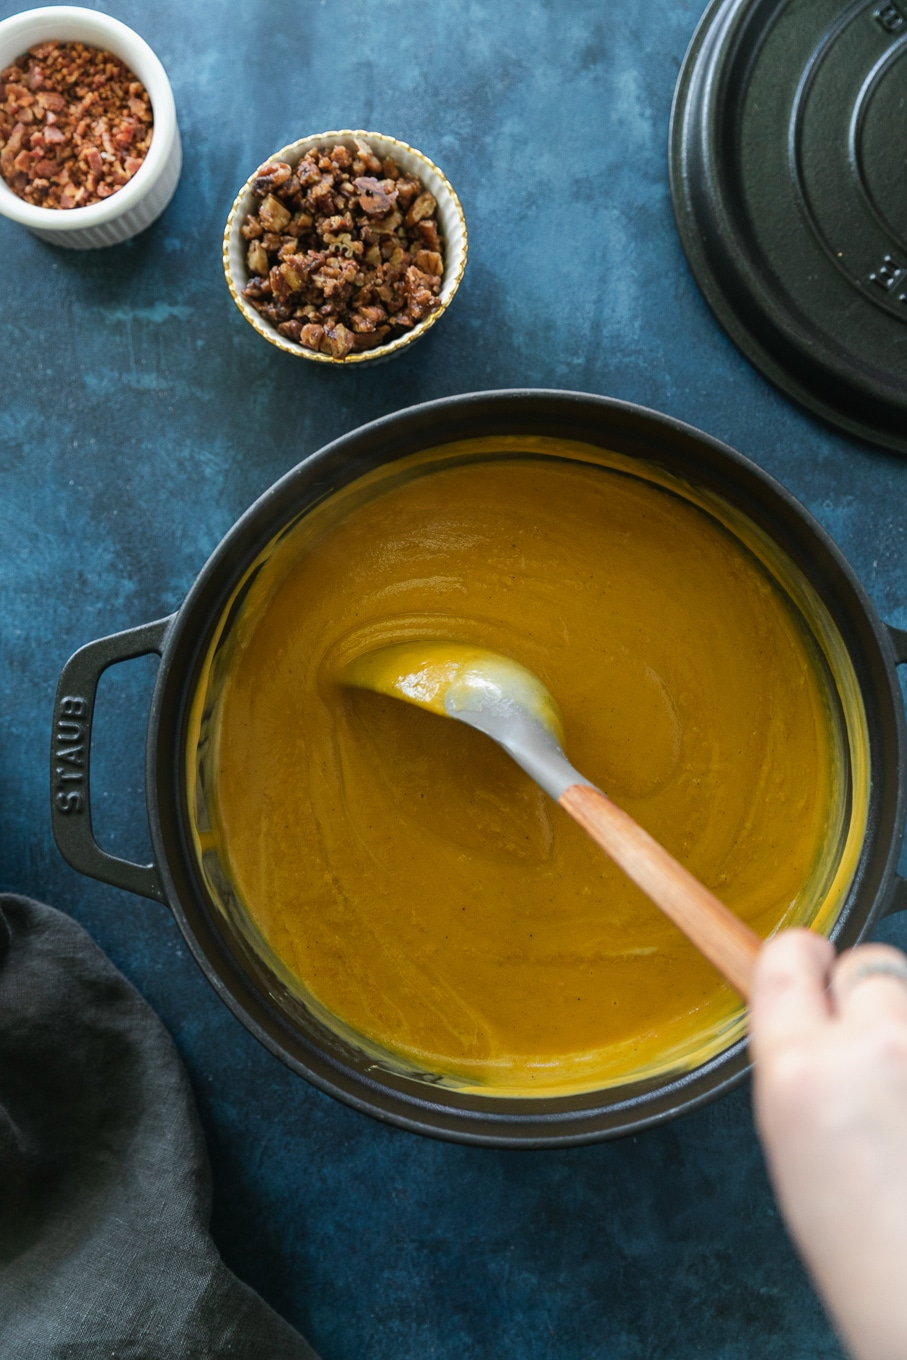 Overhead shot of a black dutch oven filled with creamy sweet potato soup being stirred with a spoon with a grey top and wooden handle